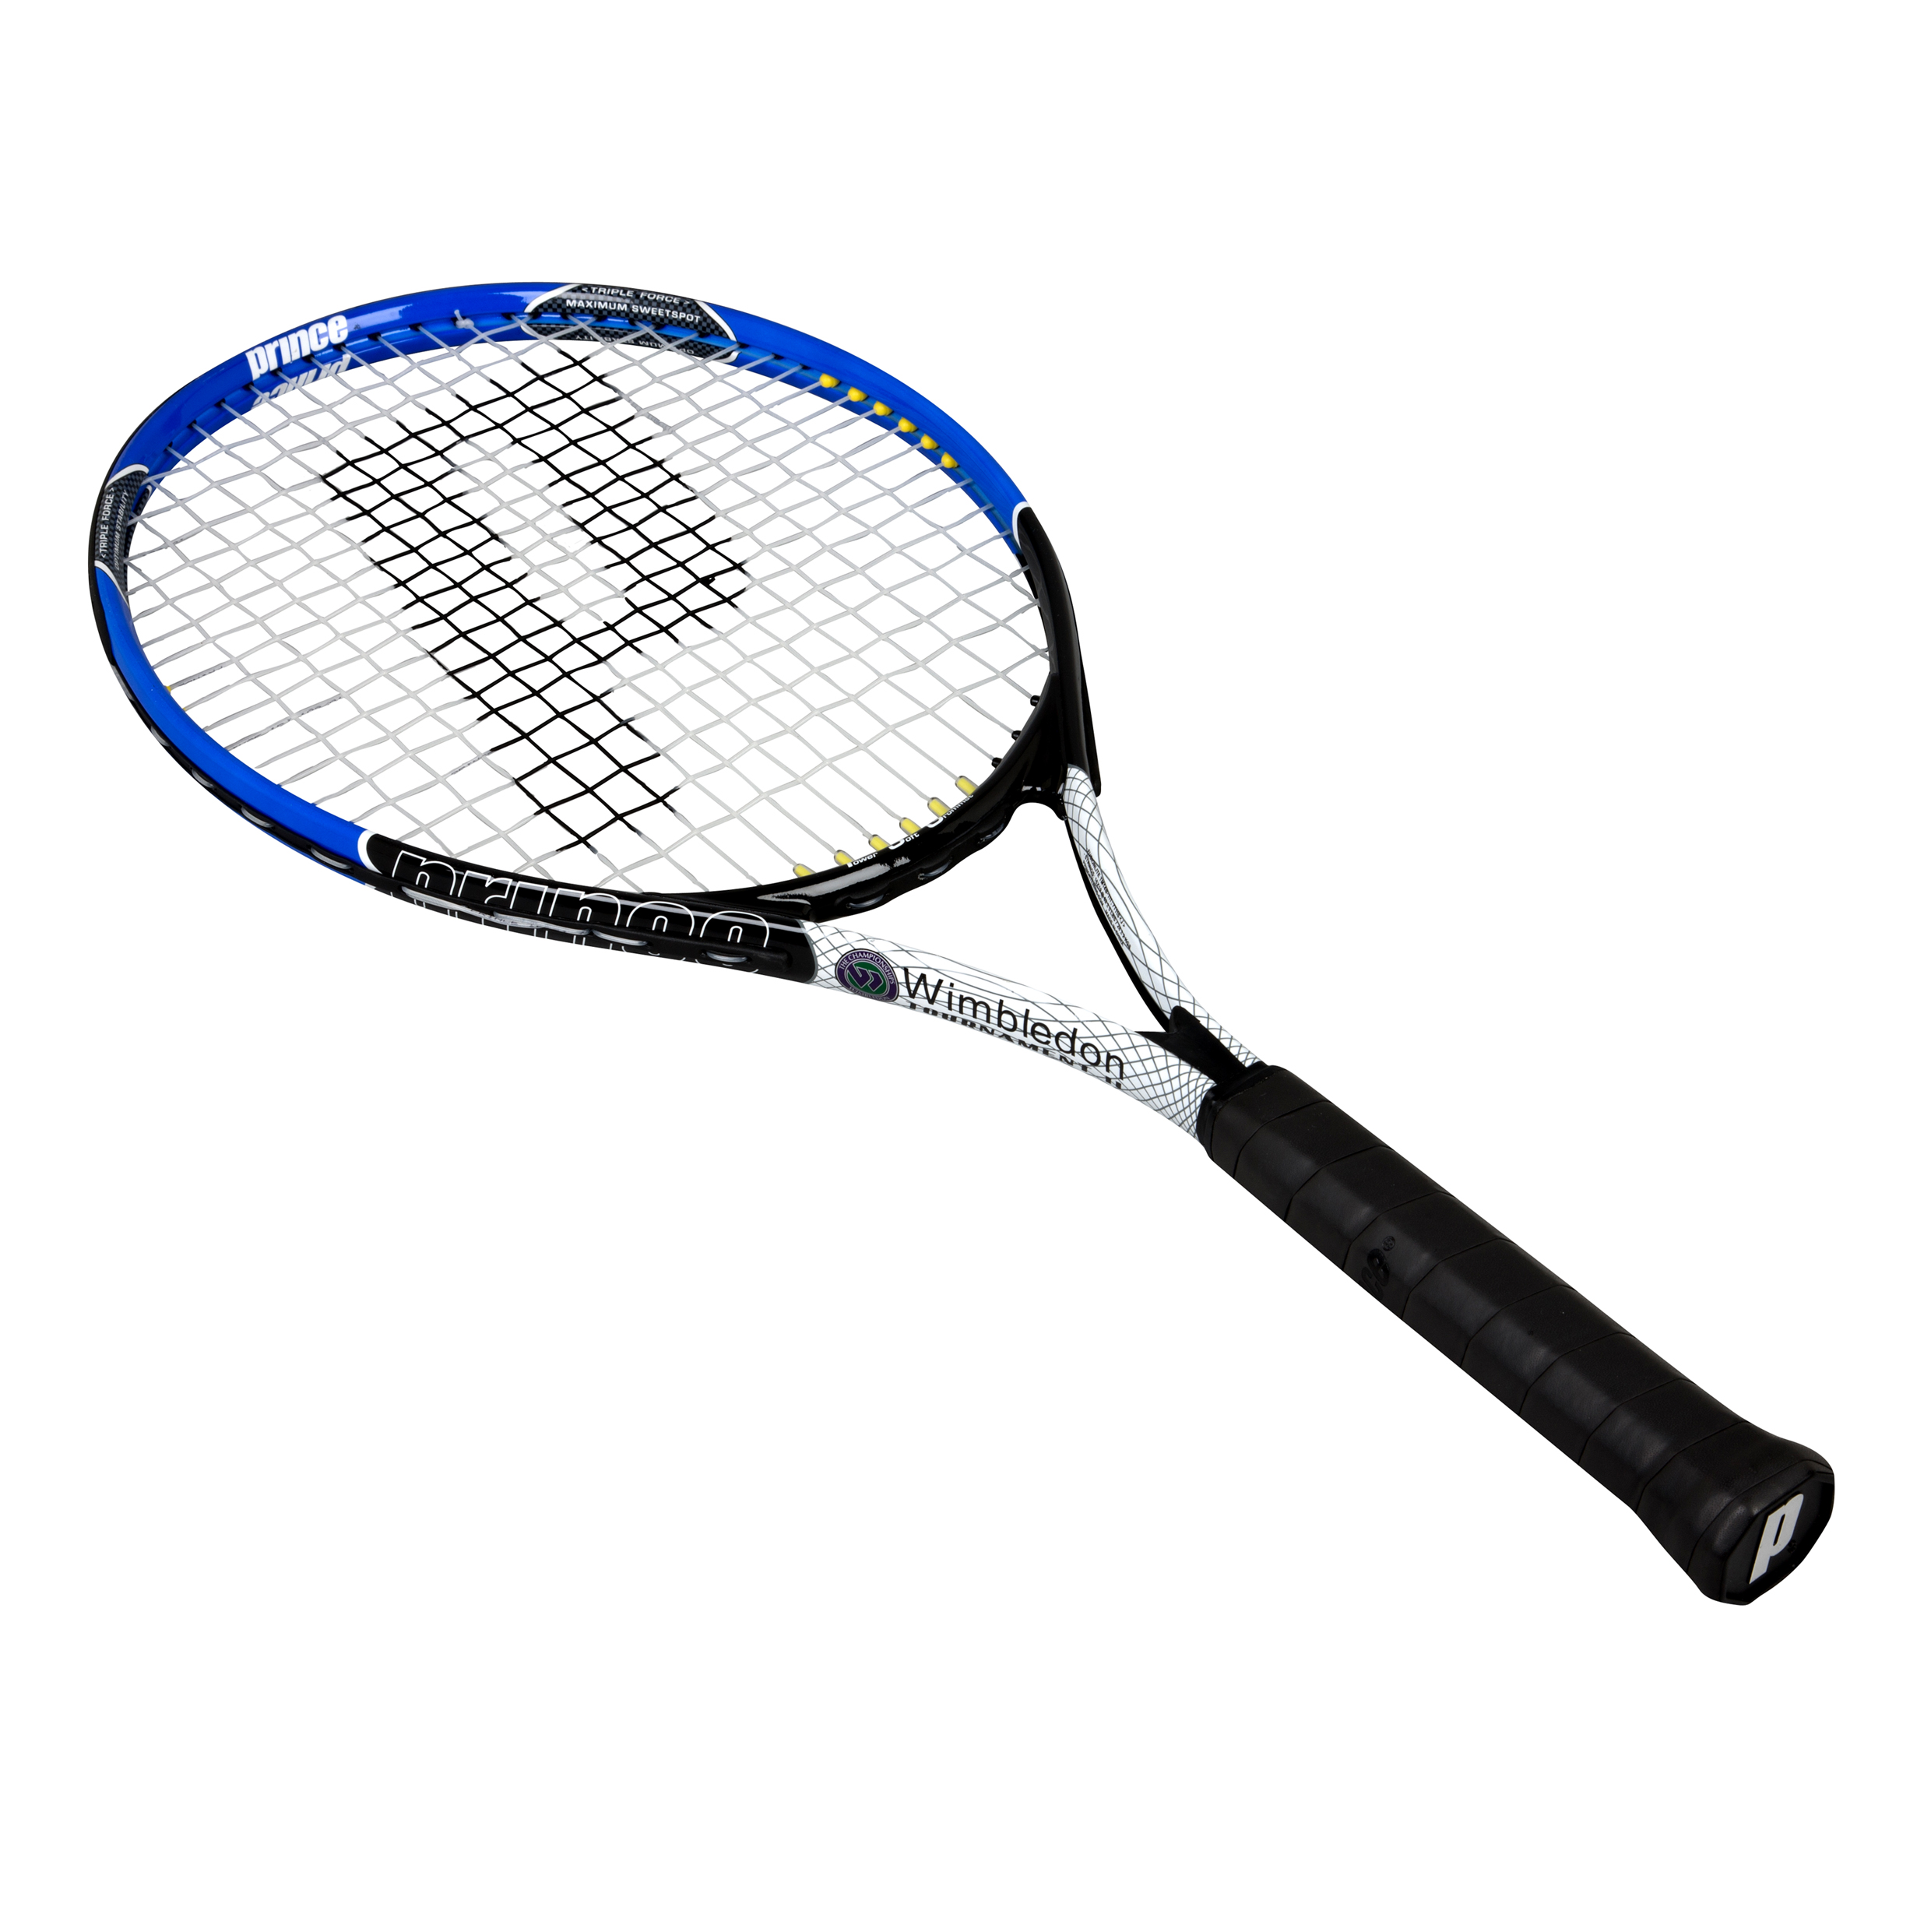 Wimbledon By Prince Tournament Tennis Racket - Blue/White/Black